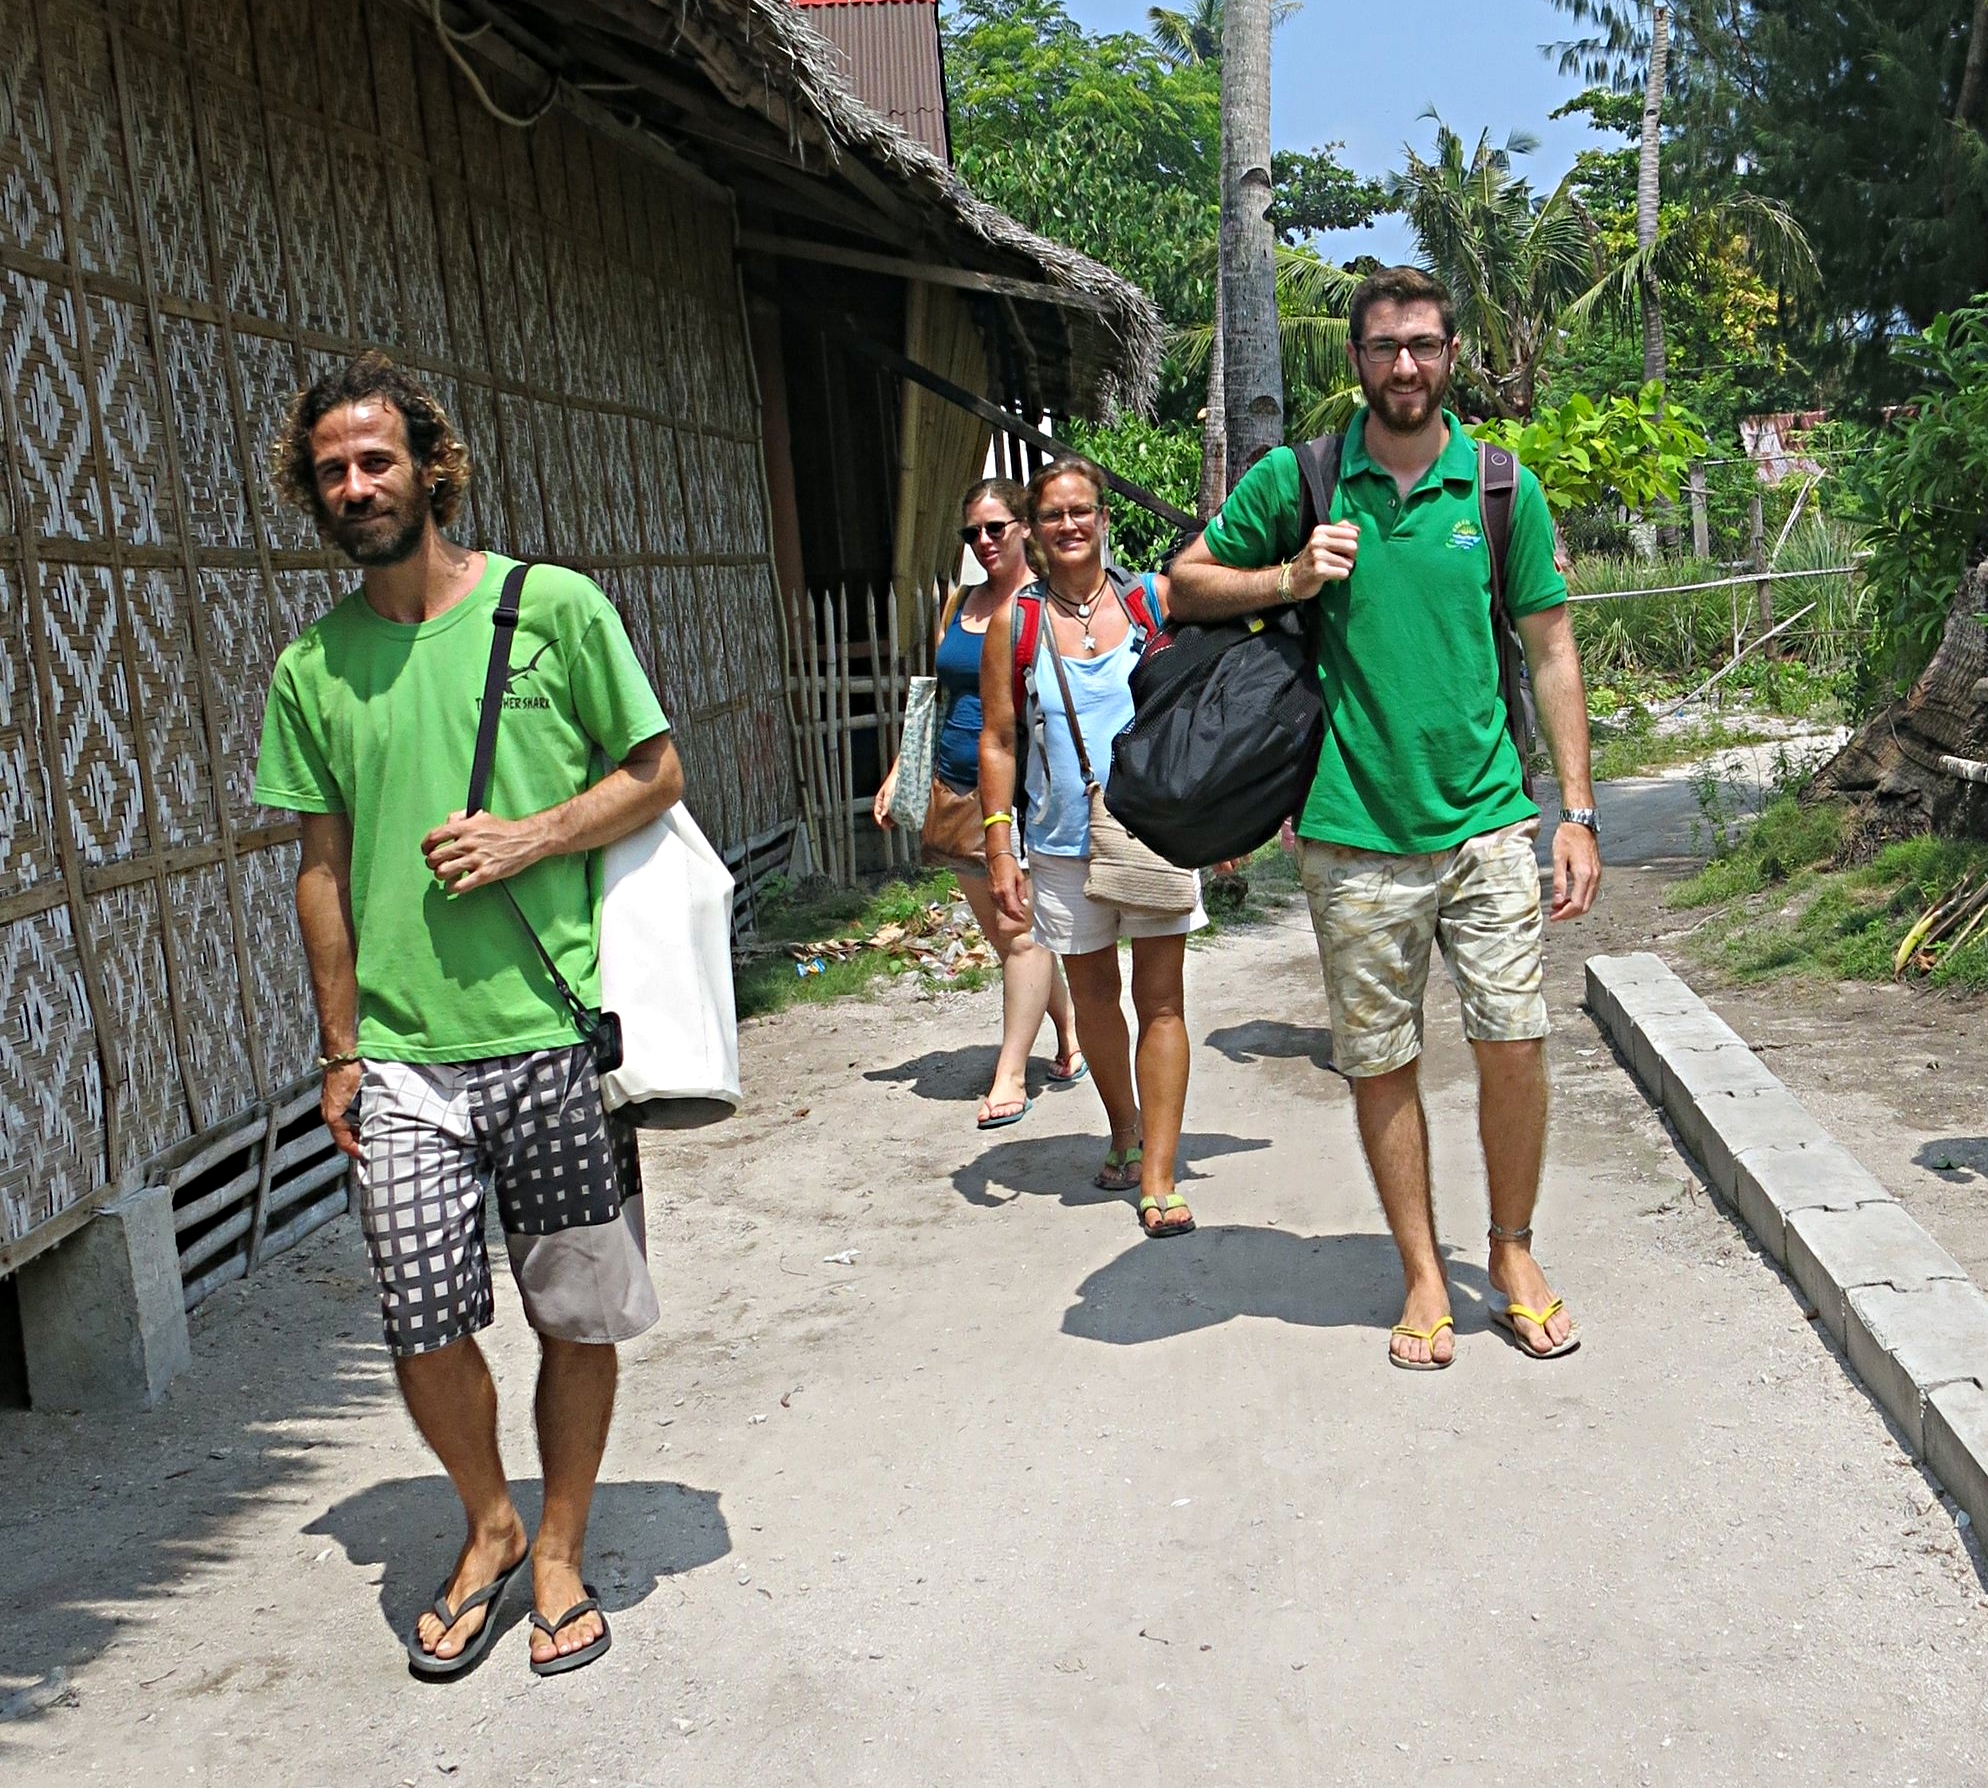 Walking the beat and carrying my dive kit back from assessment on on of the less sandy roads of Malapascua